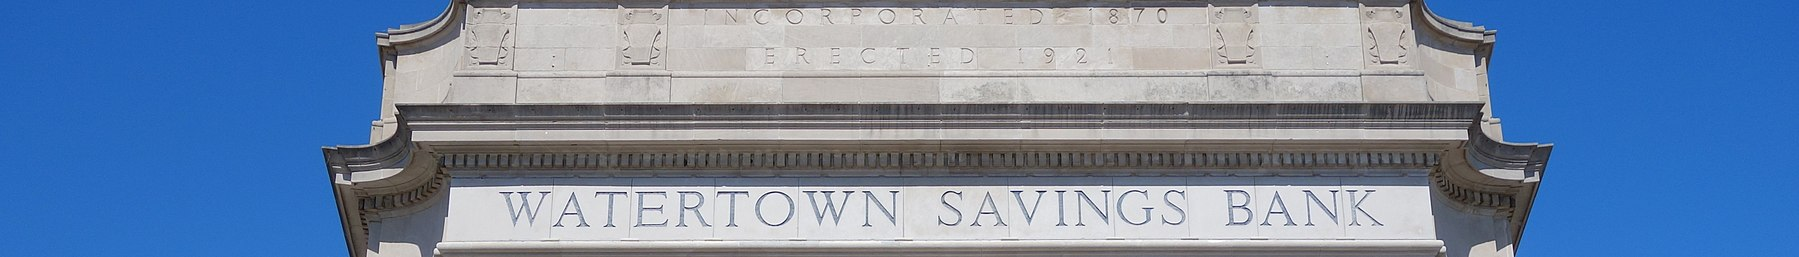 WV banner Watertown MA Savings bank.jpg